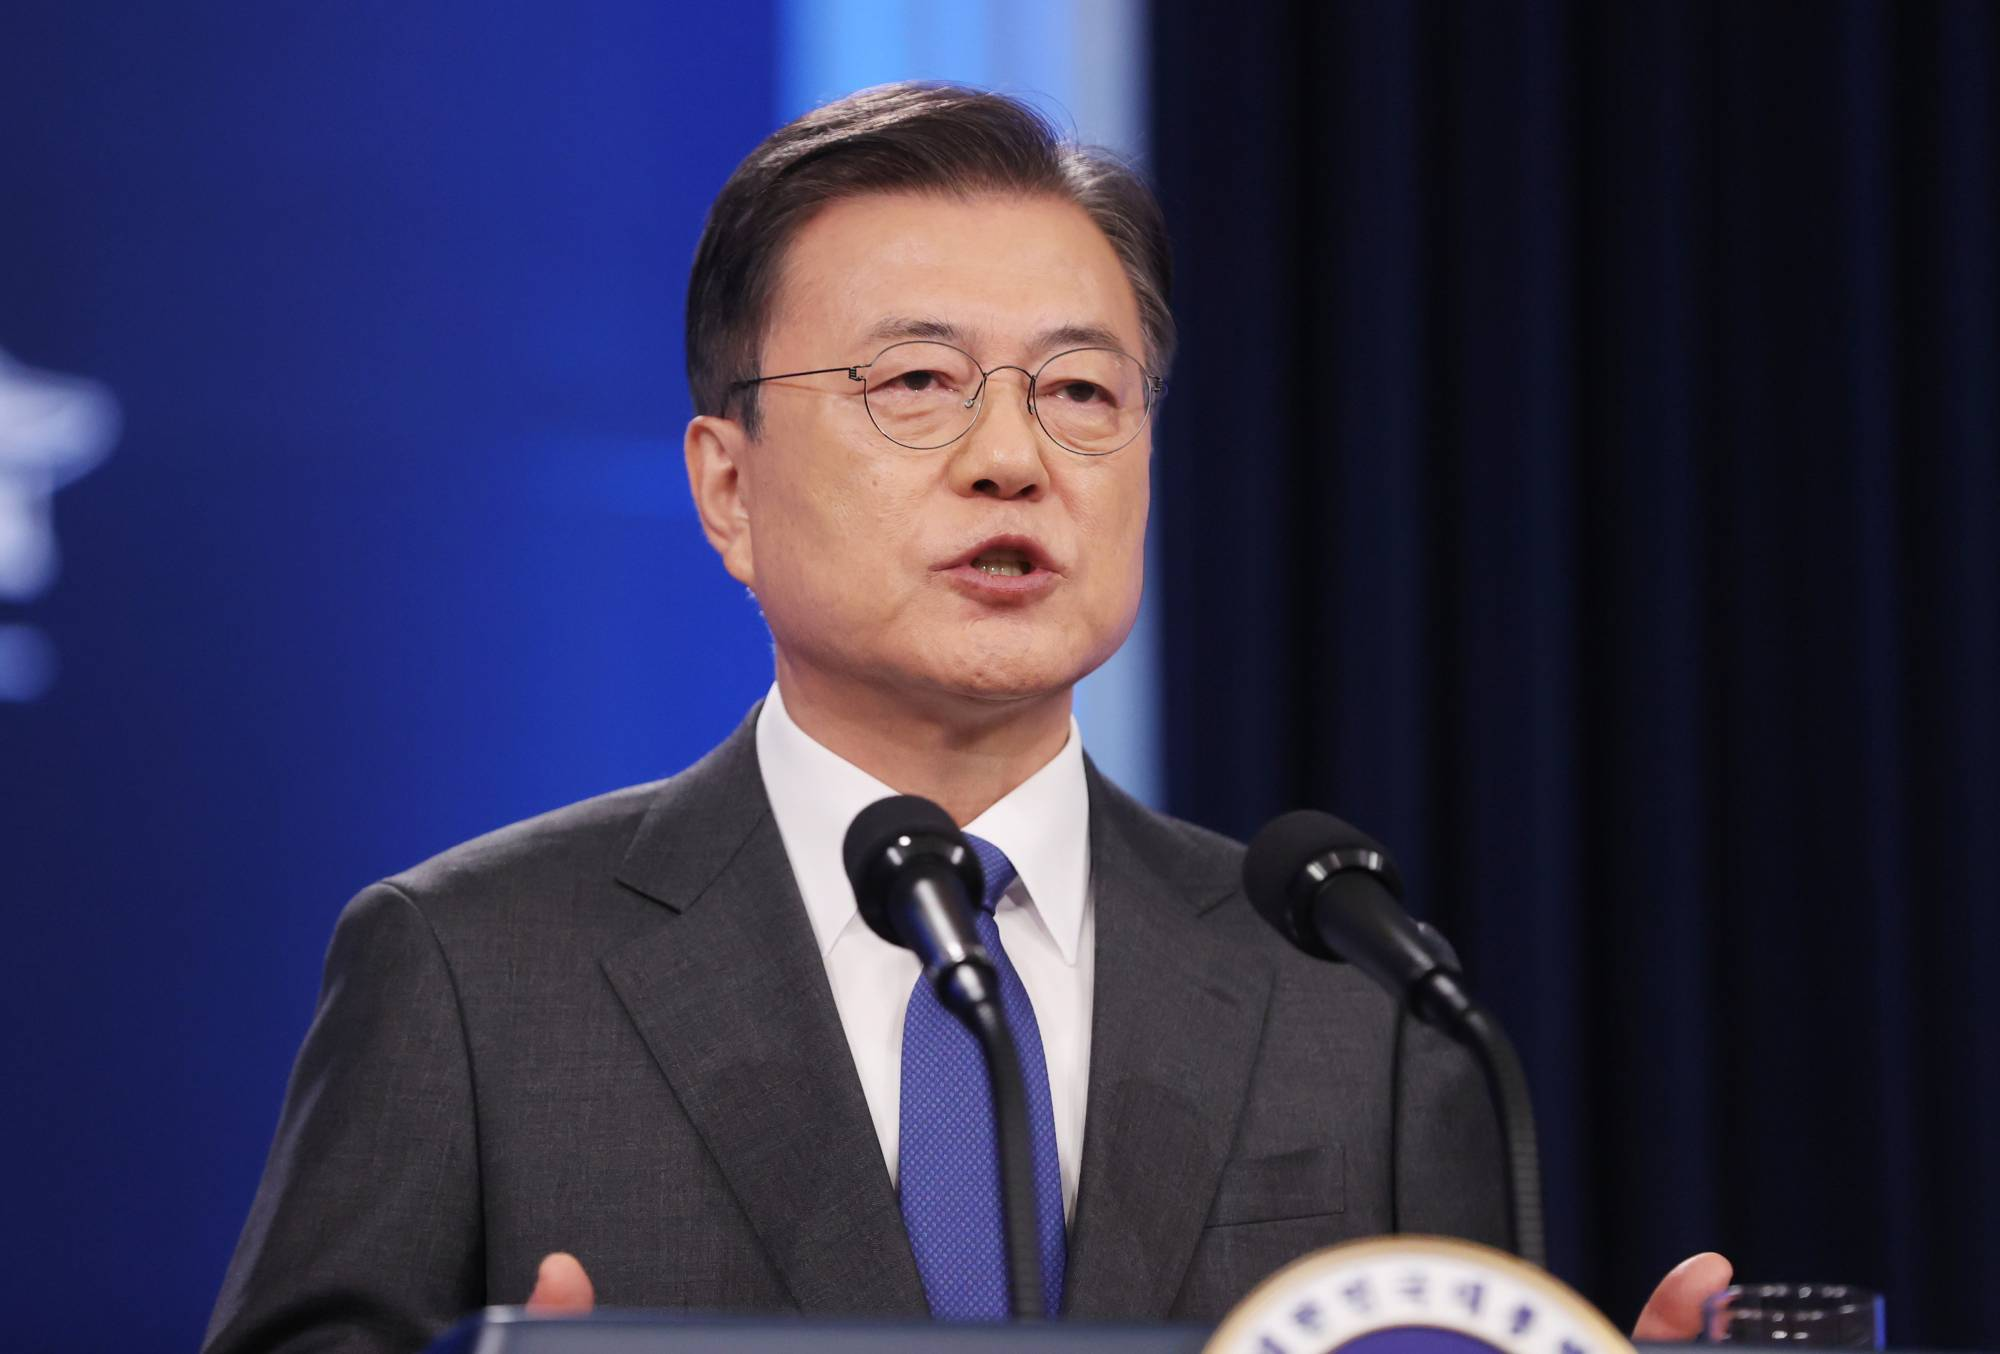 South Korean President Moon Jae-in delivers a speech marking the start of the final year in his five-year term at the Presidential Blue House in Seoul on May 10. | YONHAP / VIA REUTERS